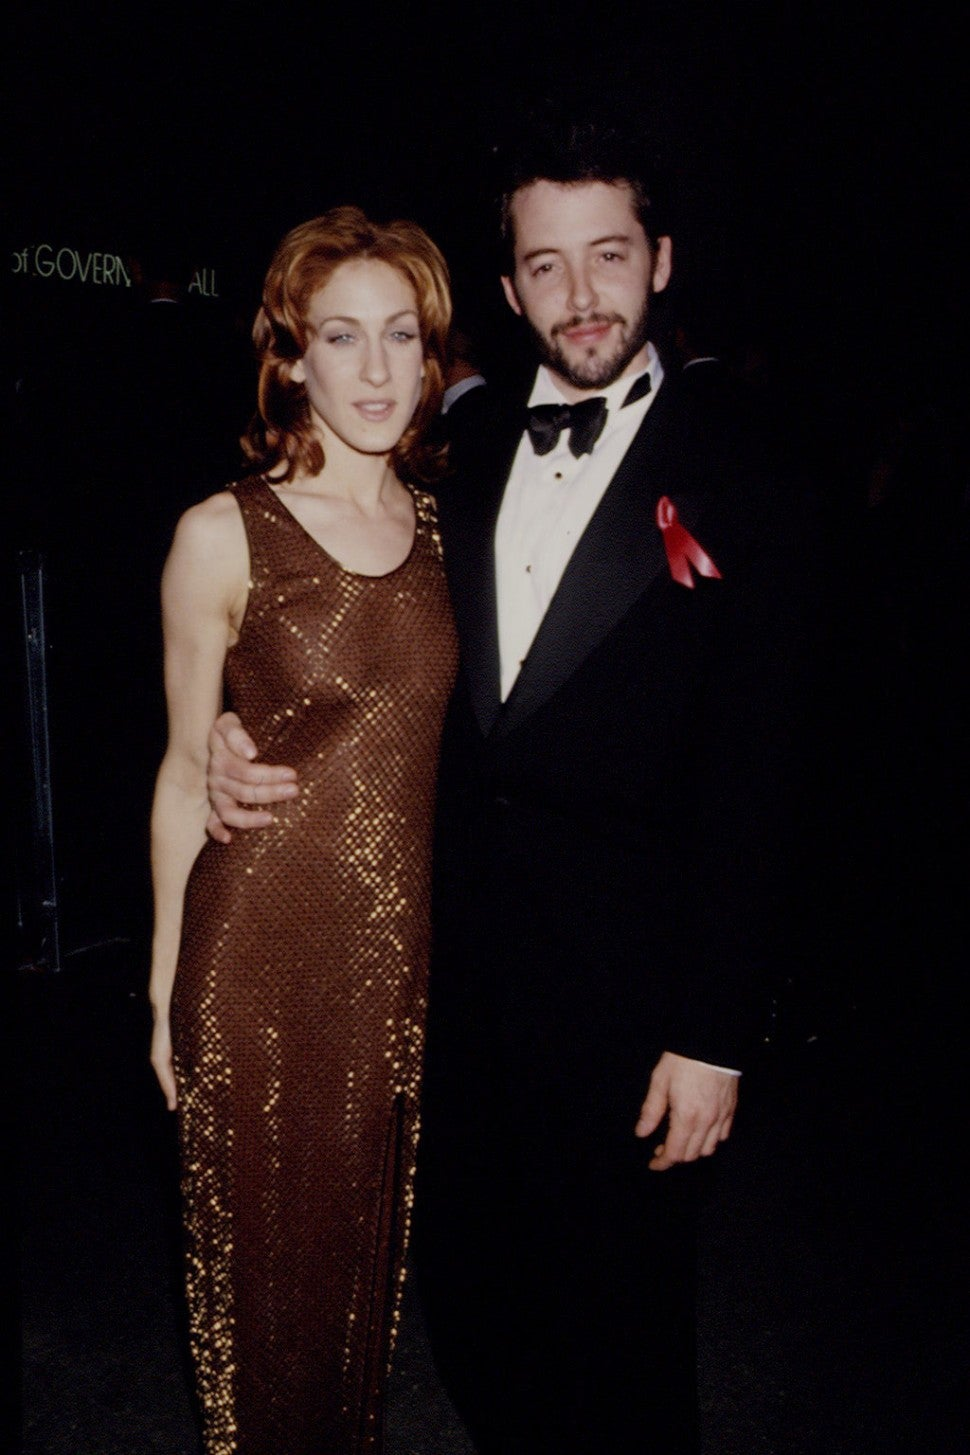 Sarah Jessica Parker and Matthew Broderick at the 1993 Oscars